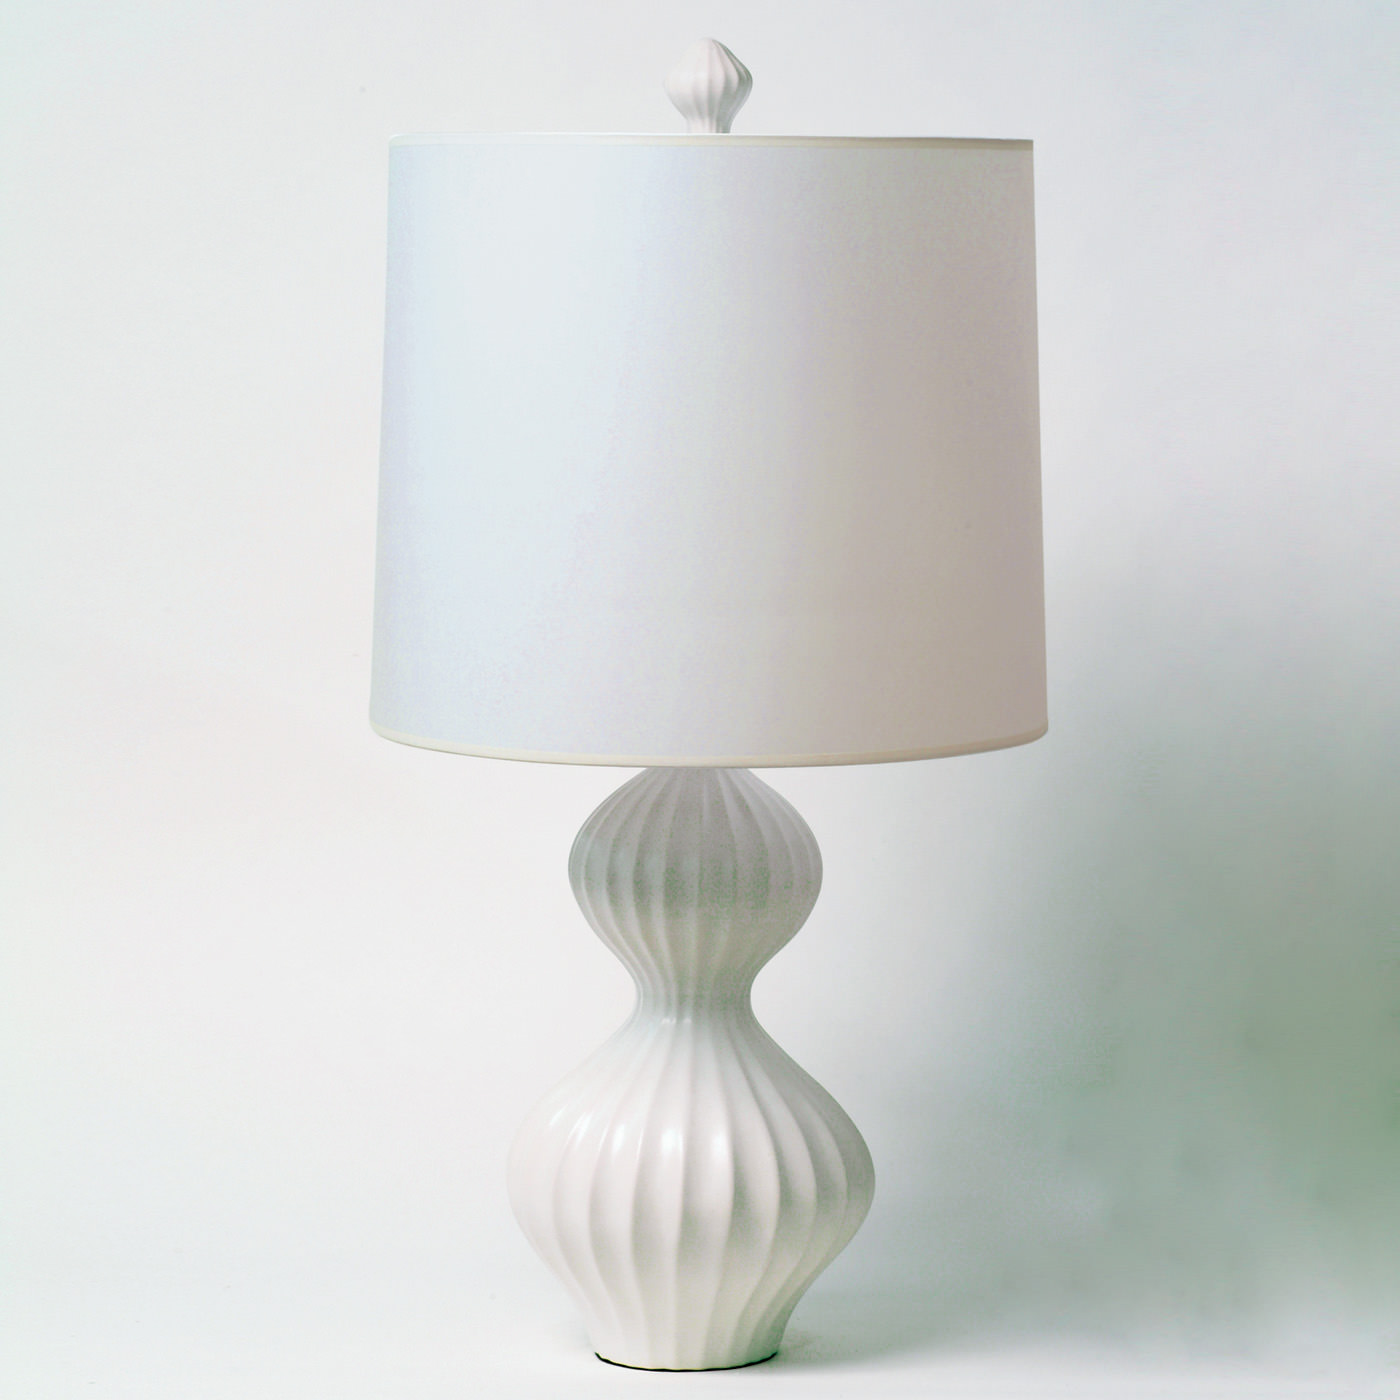 White Desk Lamp : White lamp table methods to give an artistic touch